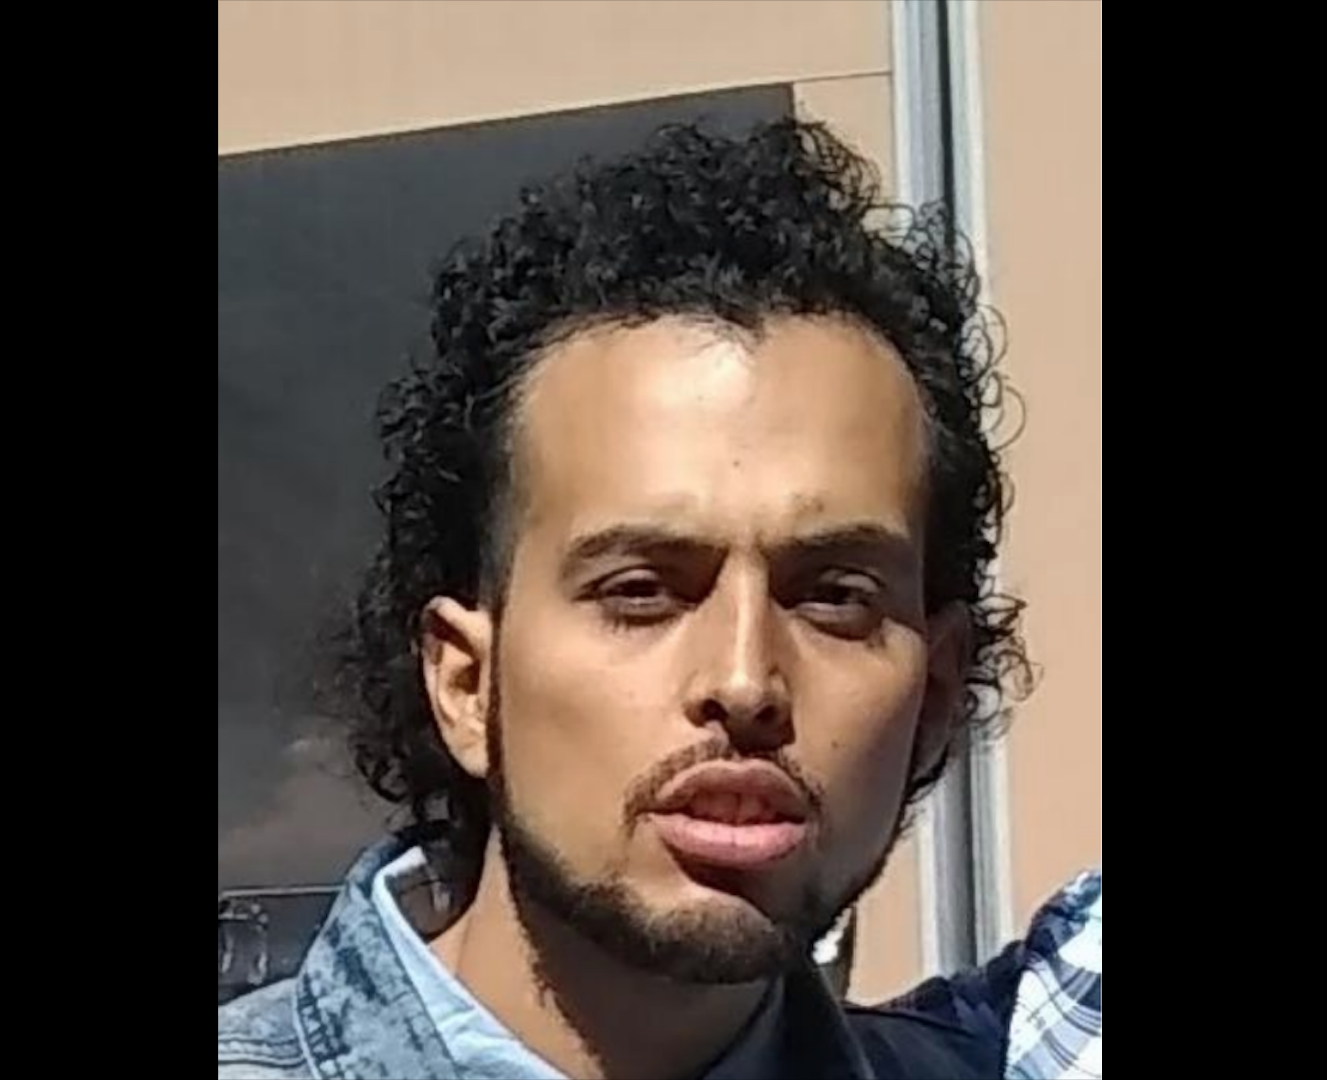 Carlos Valencia was reported missing from Little Village